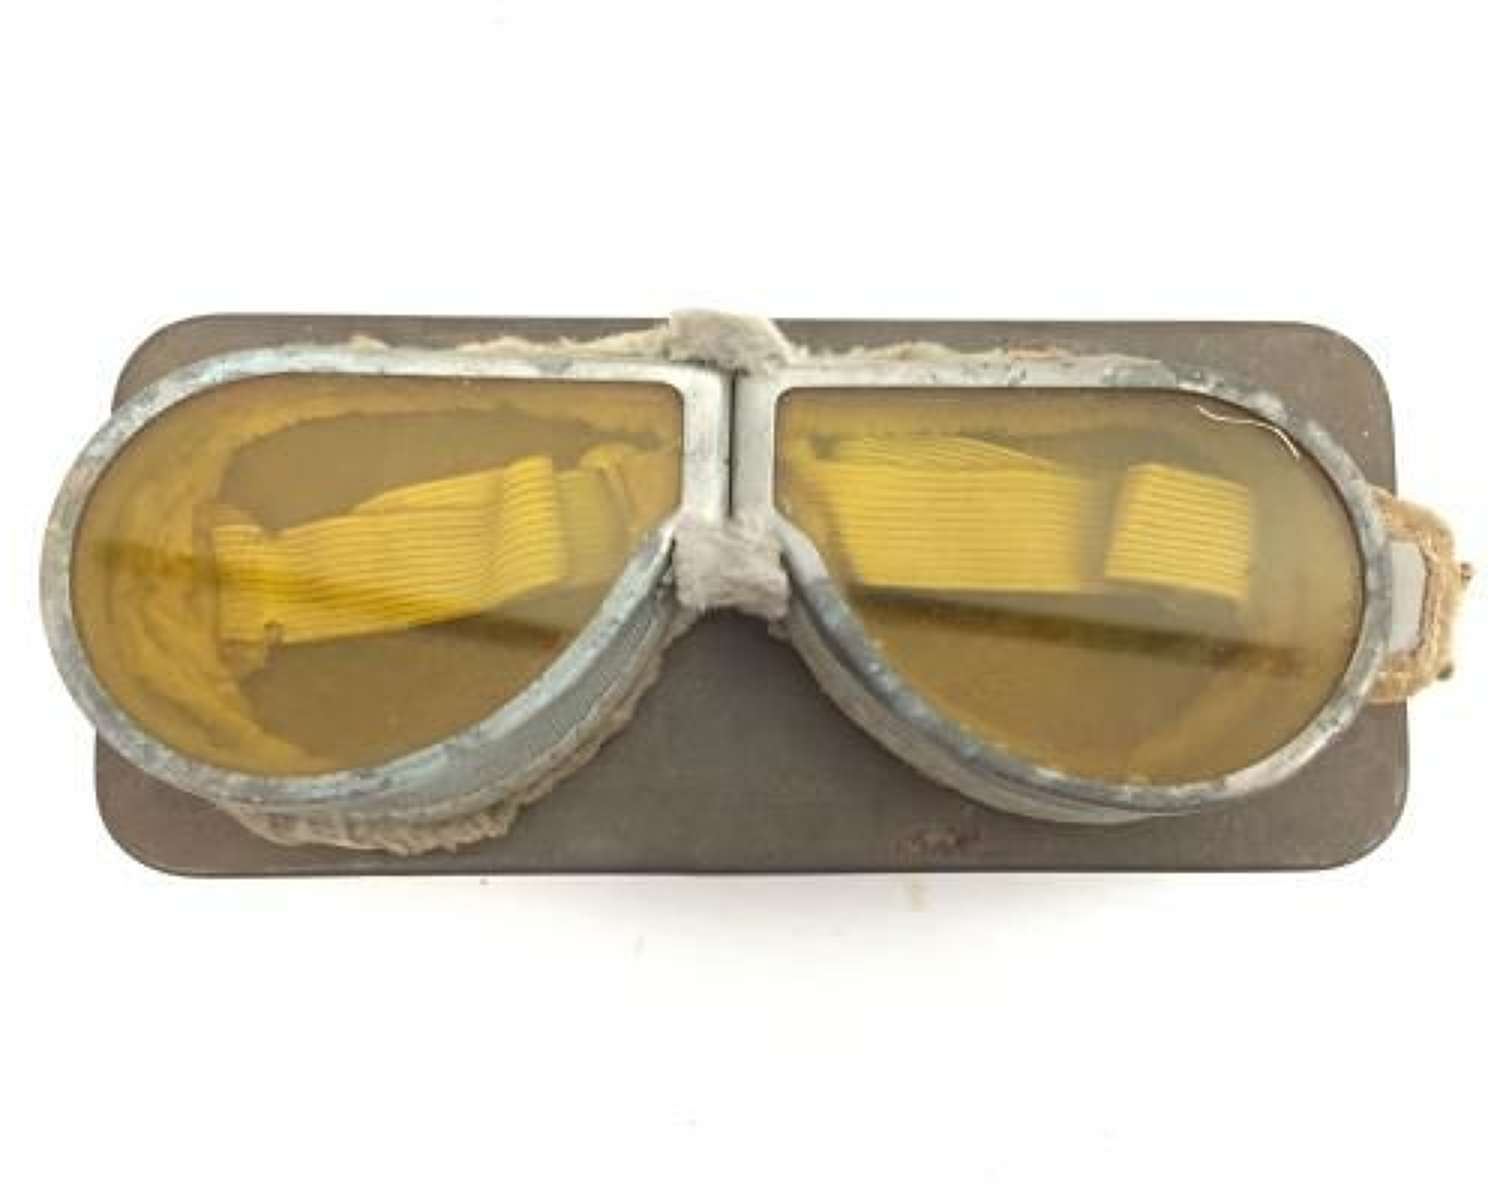 Original British Army MT Goggles with Yellow Lenses